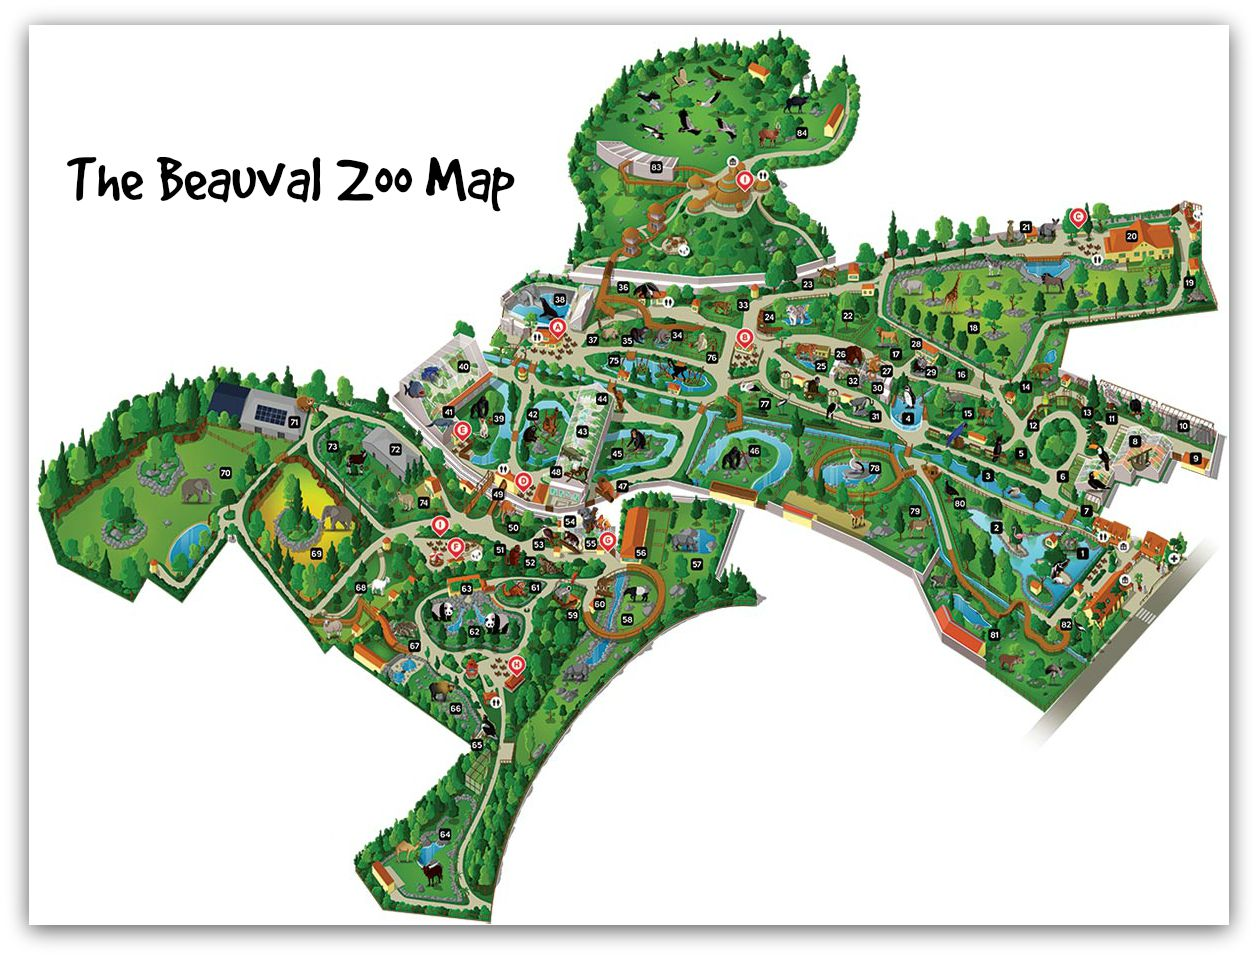 Map Of Zoos In France.Why The Beauval Zoo Is The Best